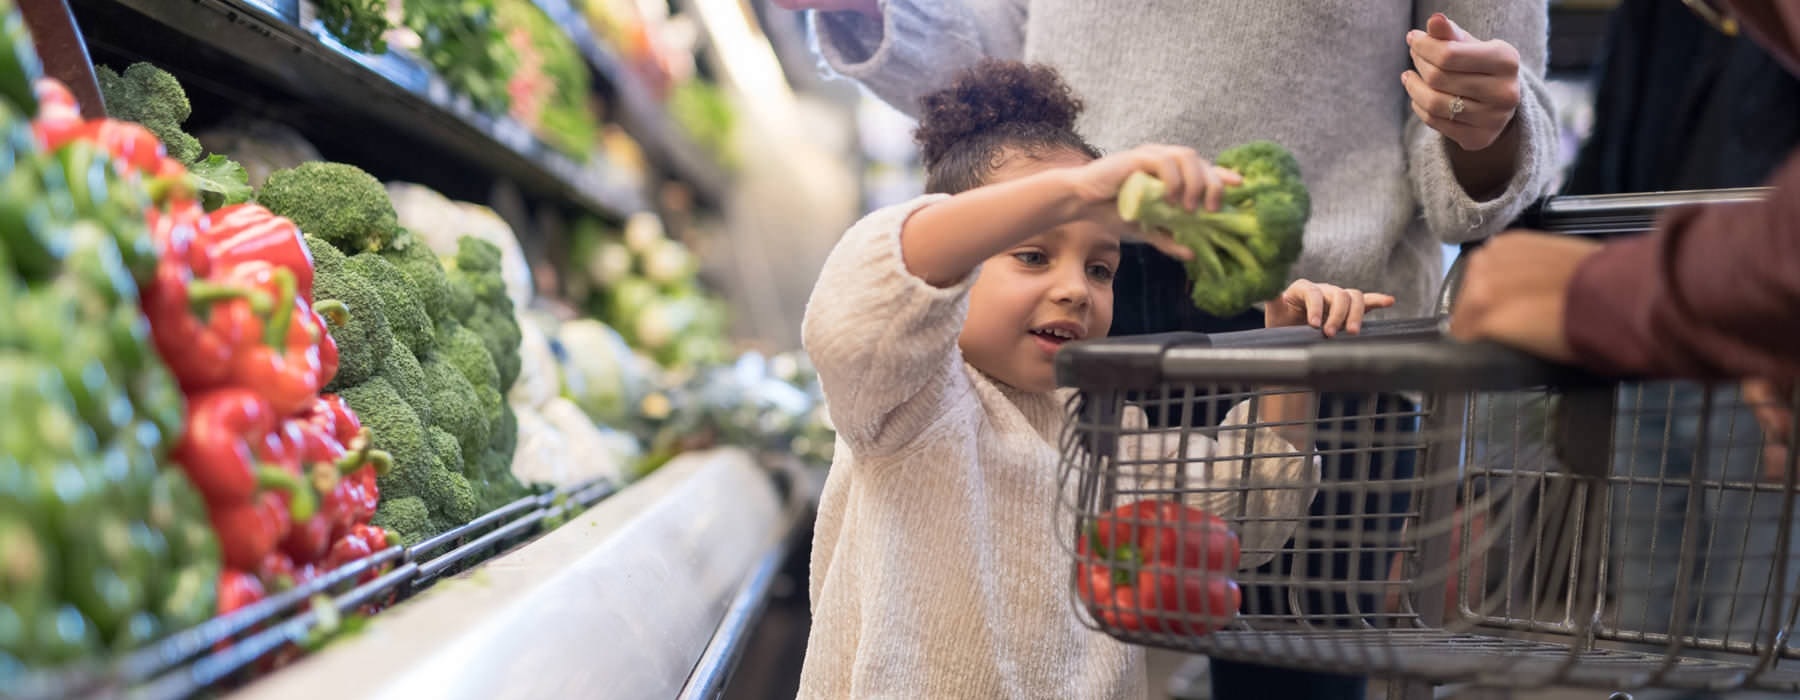 little girl puts a head of broccoli in her parents' shopping cart